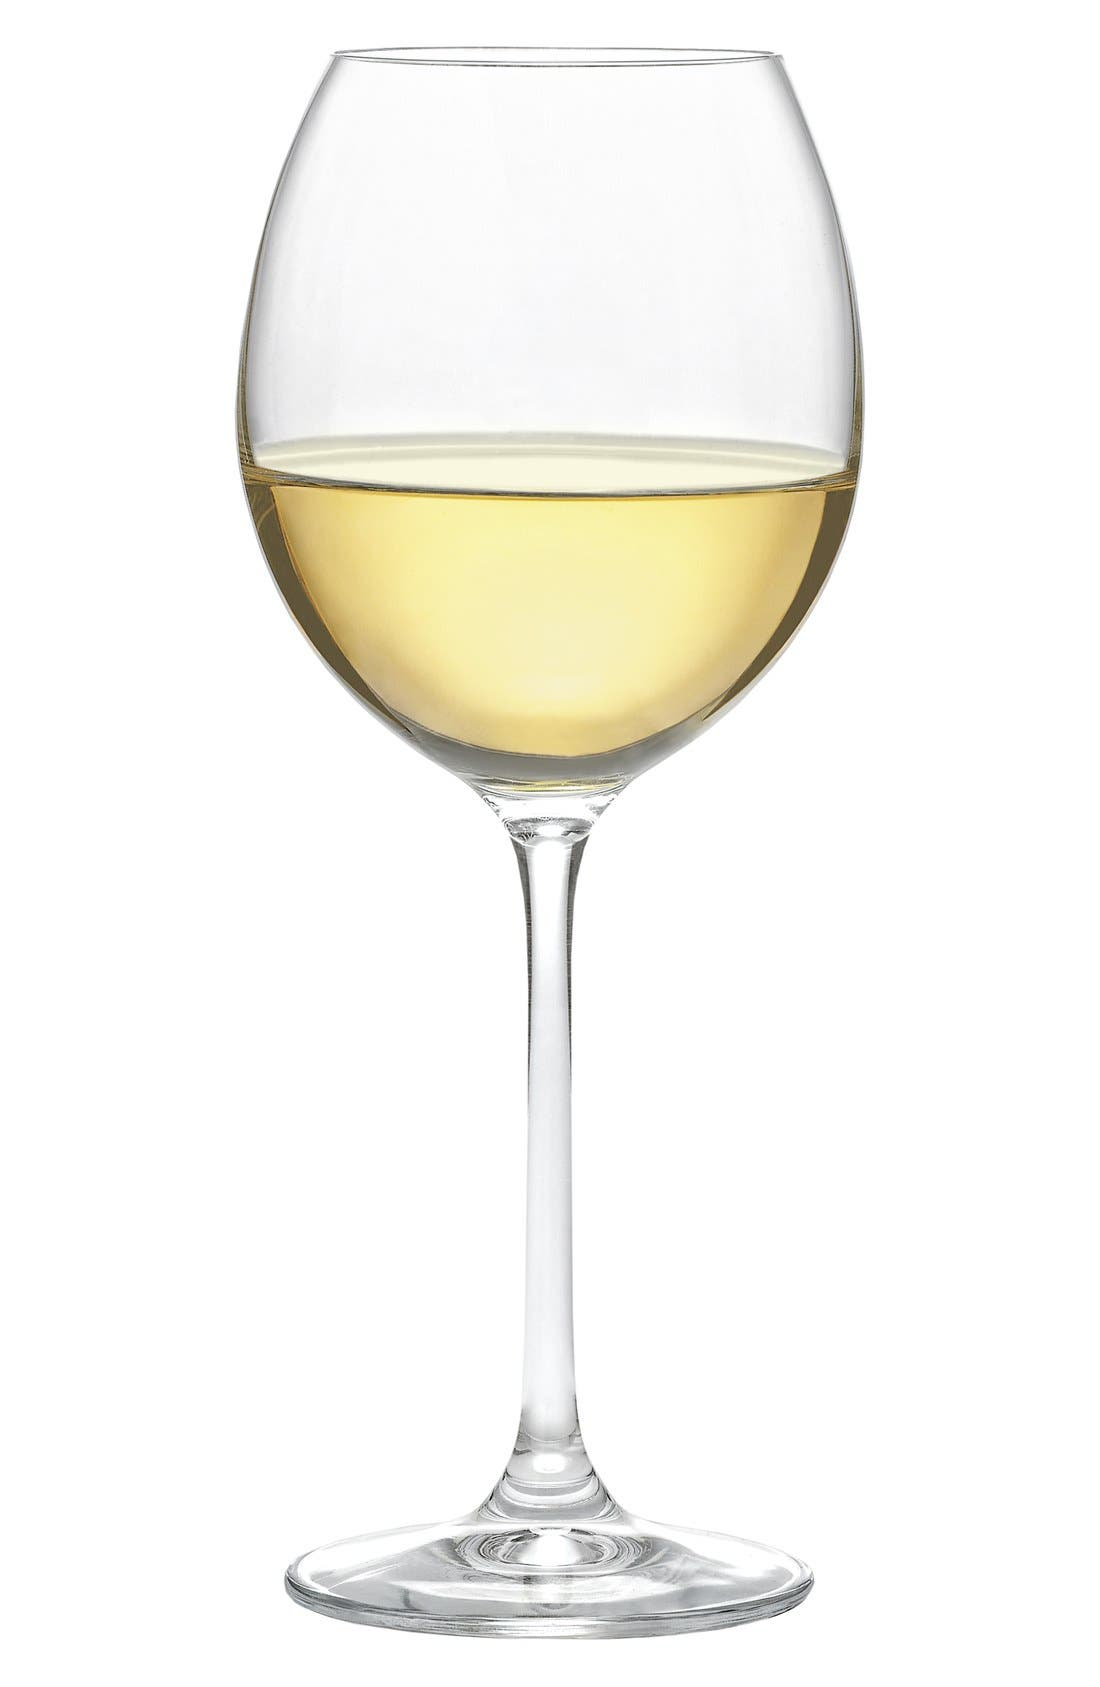 Nordstrom at Home Madrona Set of 4 White Wine Glasses